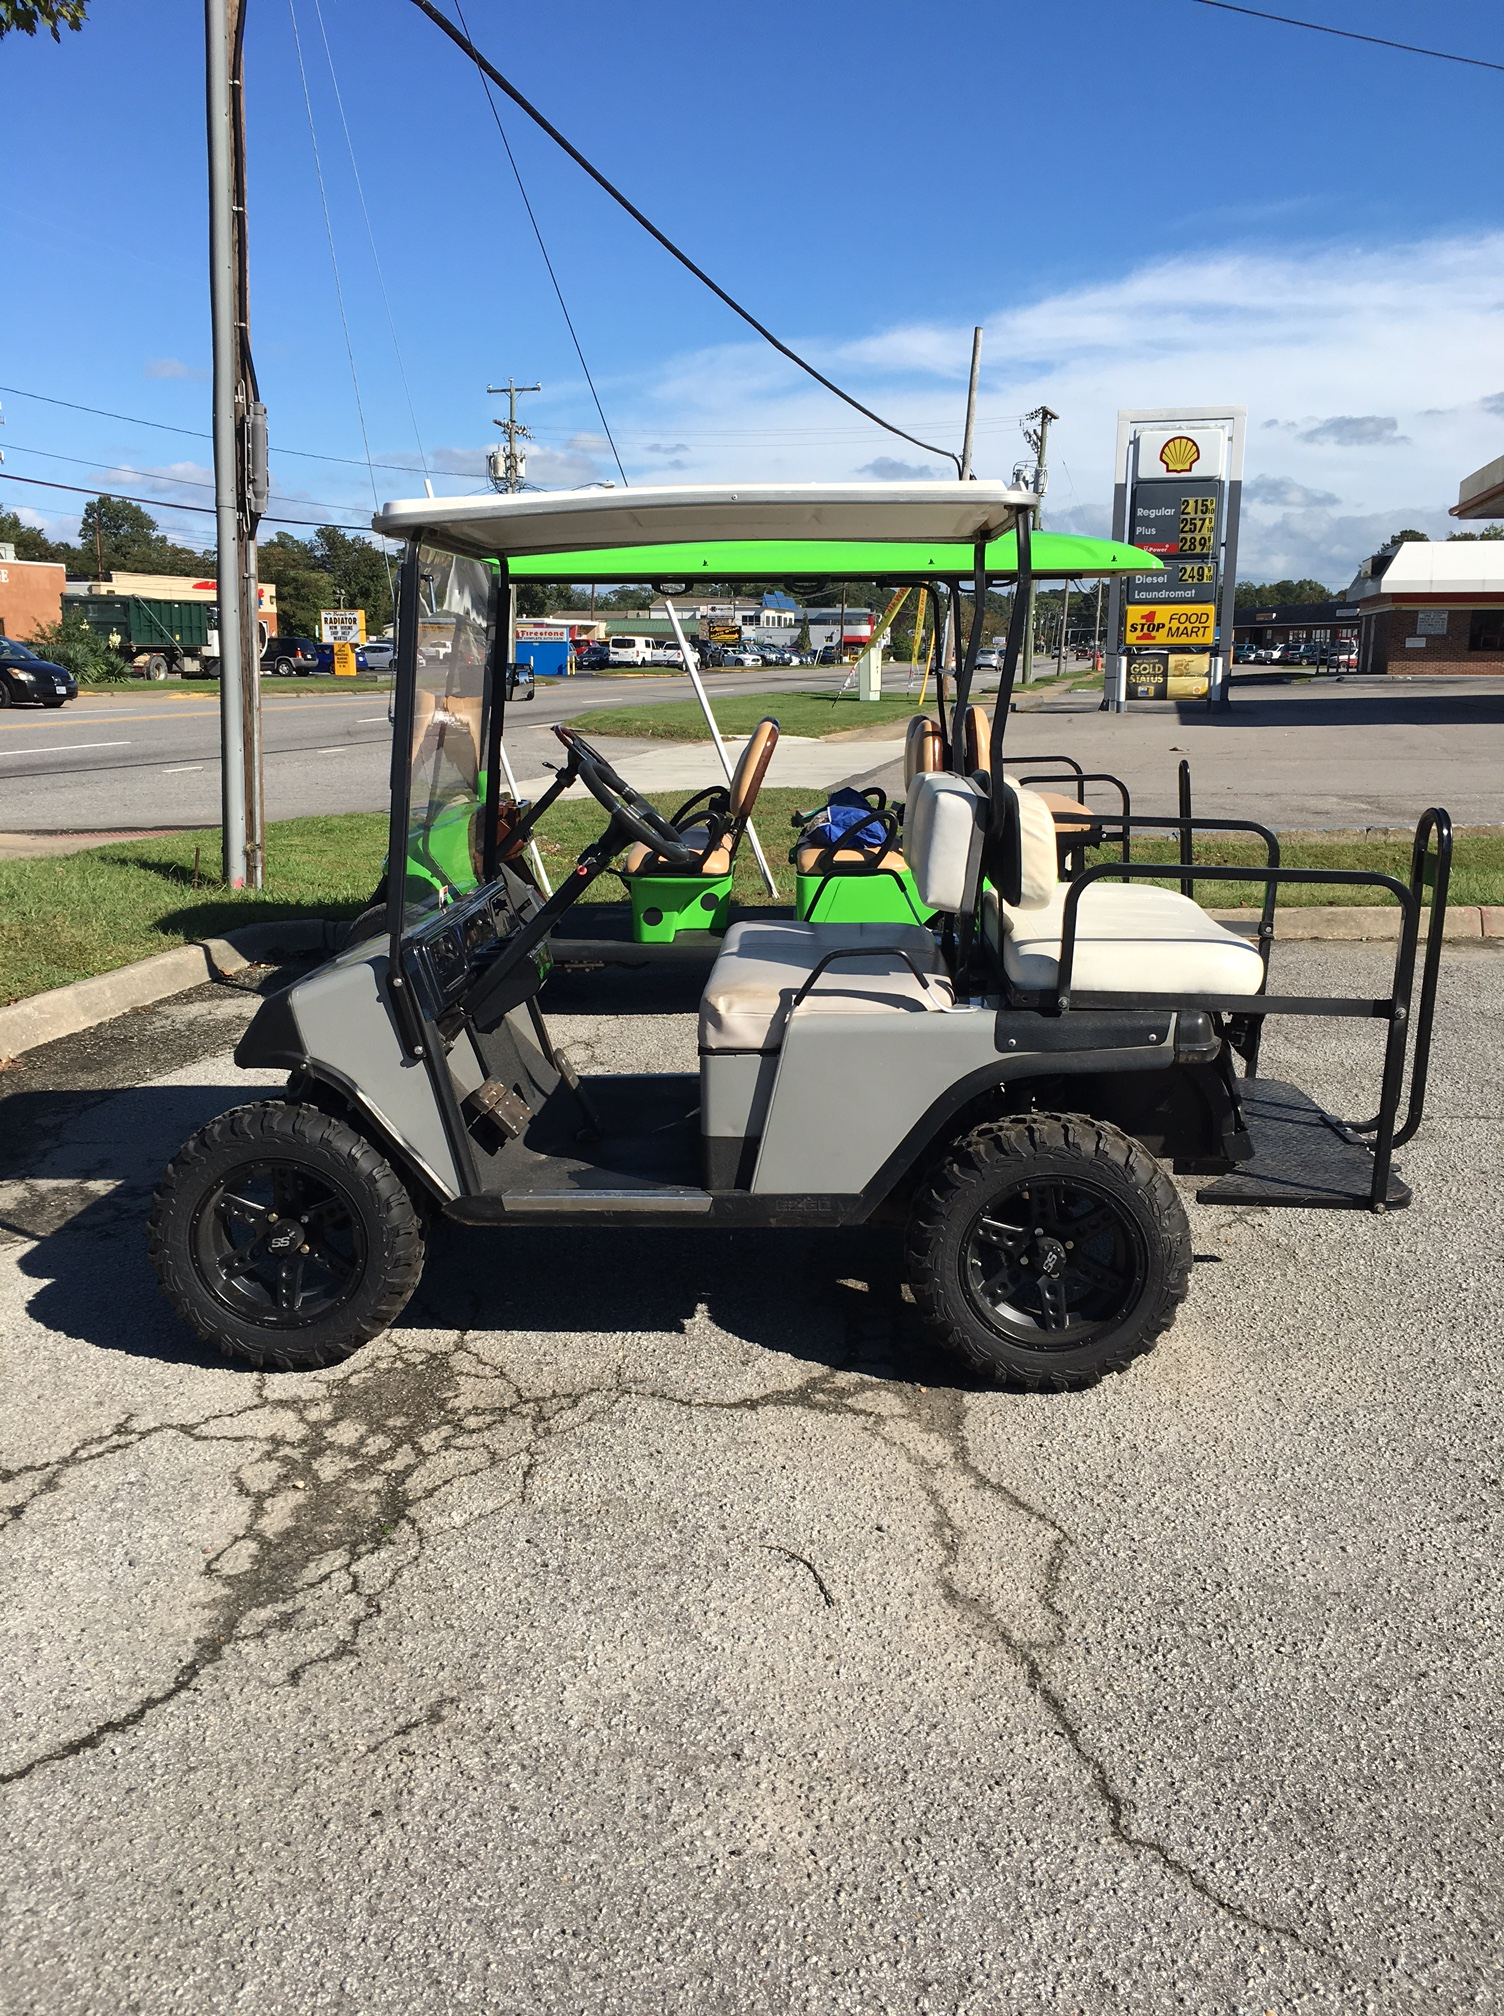 Used Golf Carts For Sale In Virginia Beach